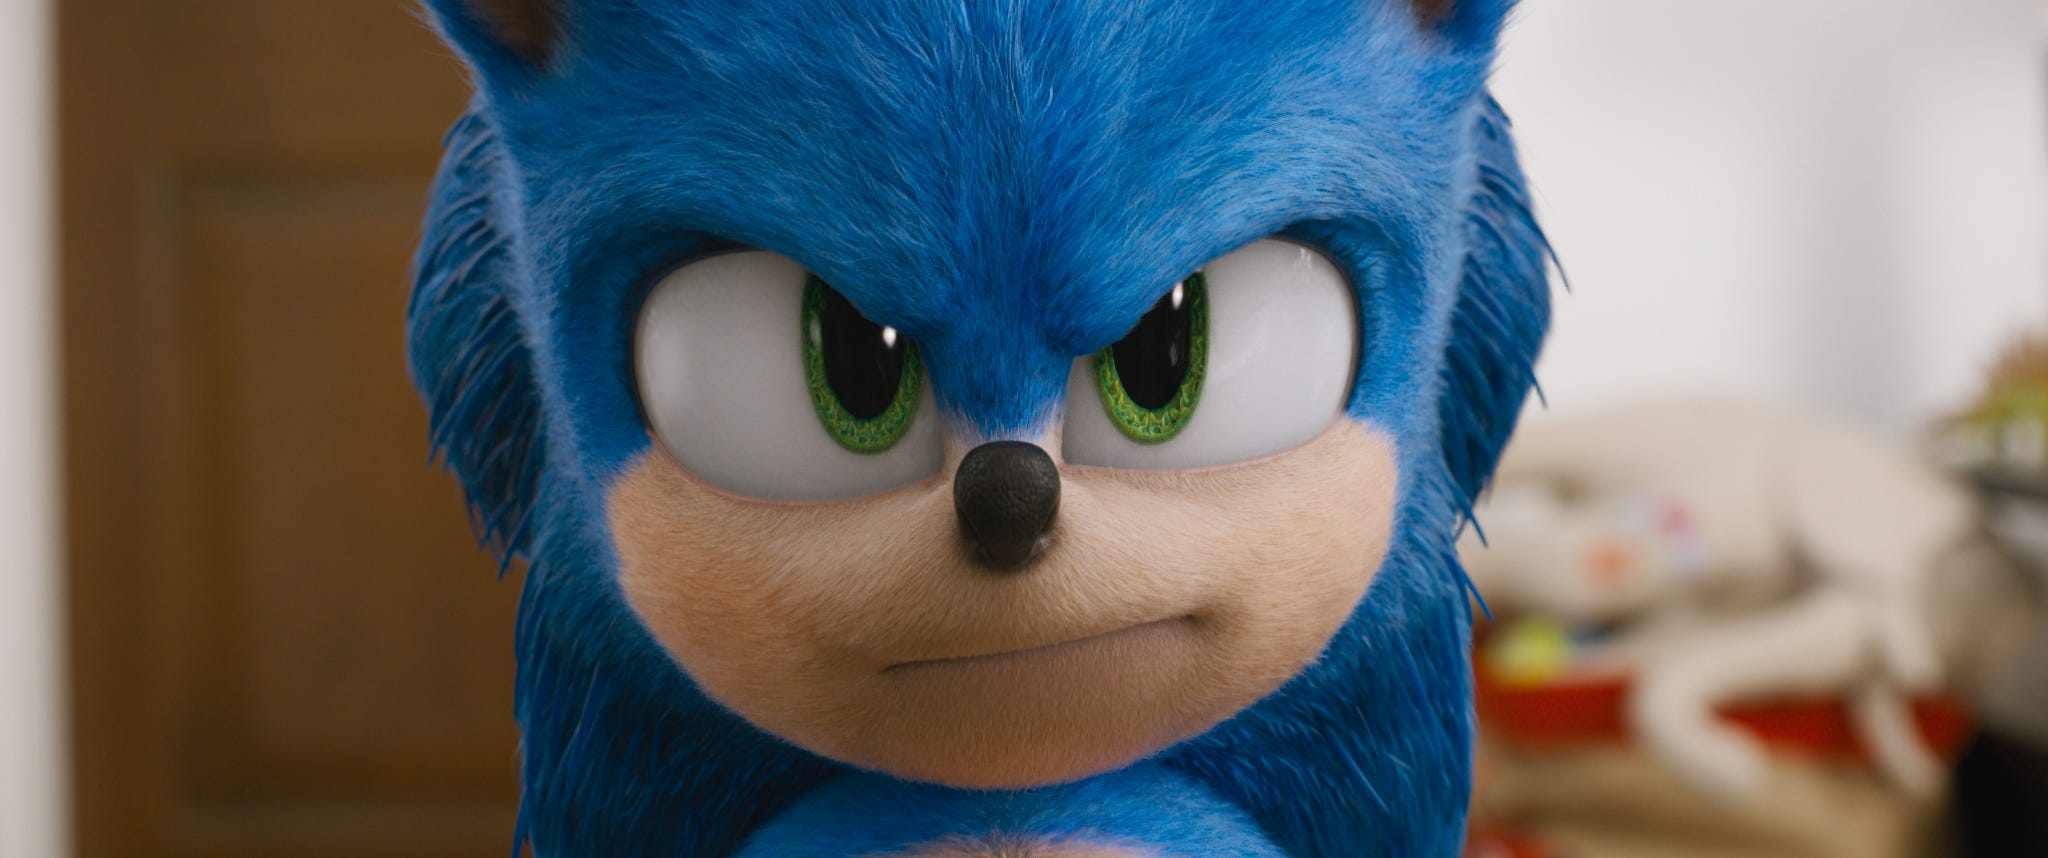 Sonic The Hedgehog Movie Redesign How Backlash Made Sonic Stronger